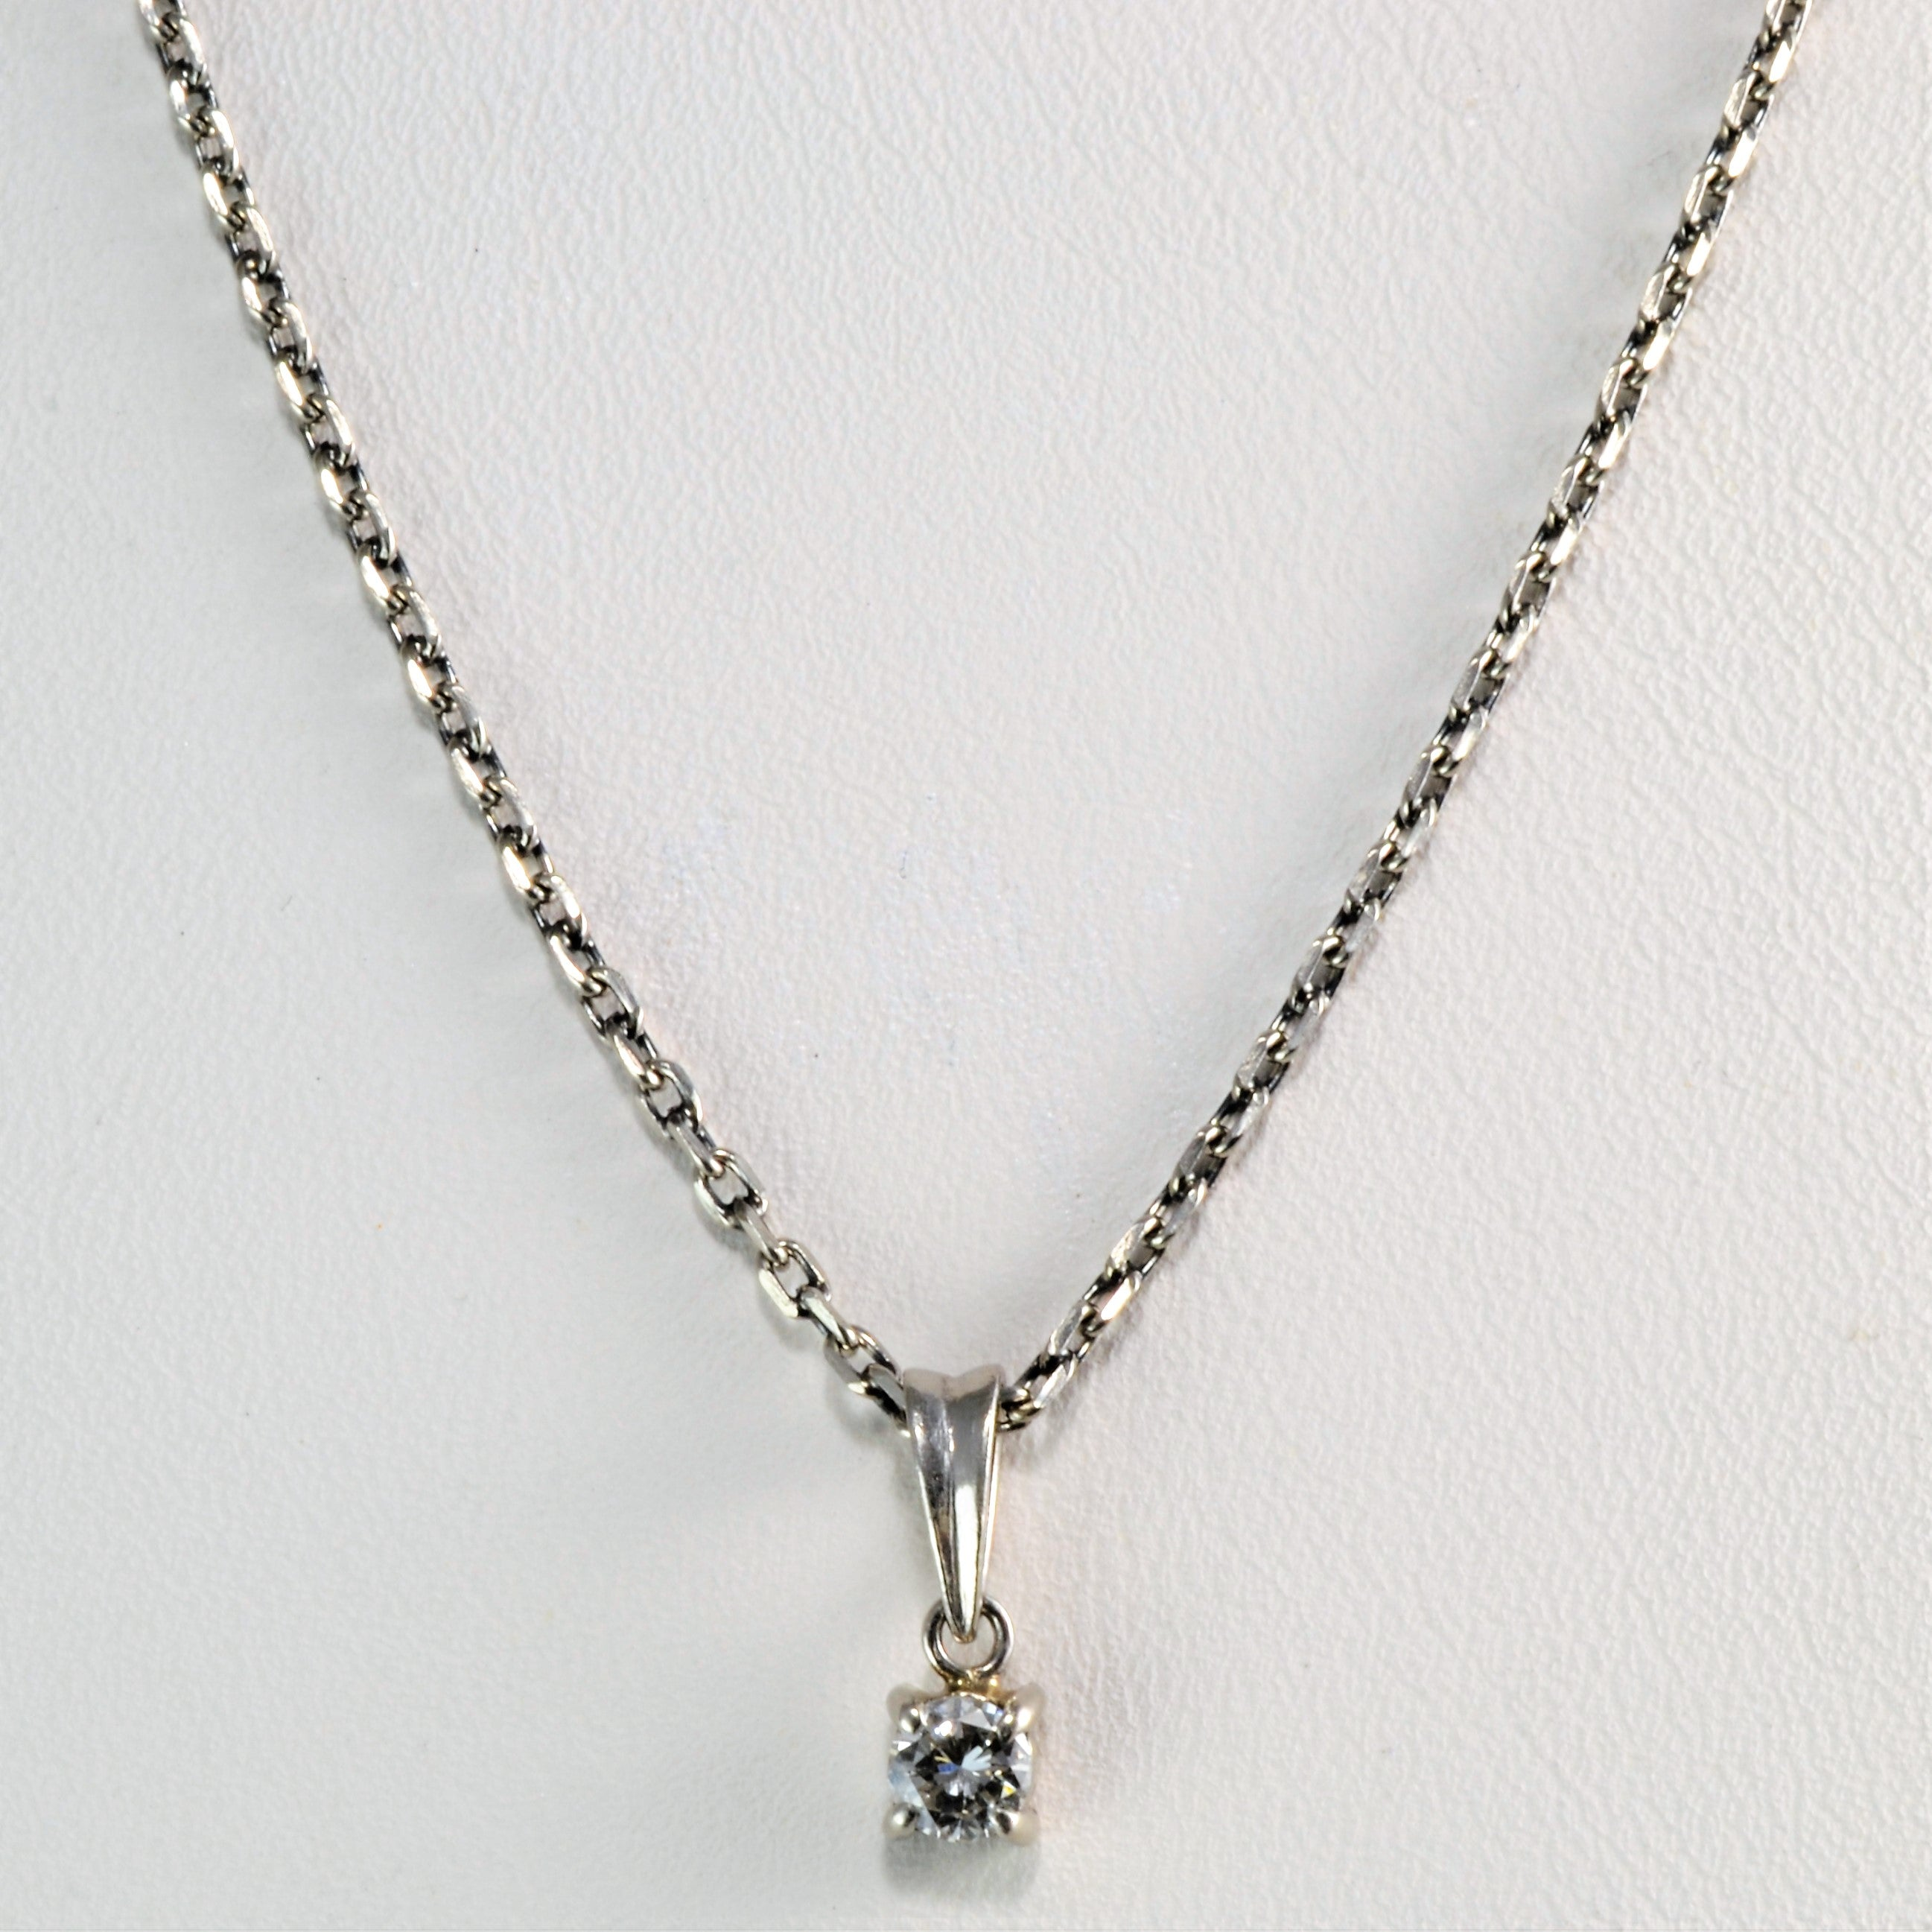 necklace of platinum diamond onyx wright deco auctions a jewels auction jade april watch and art